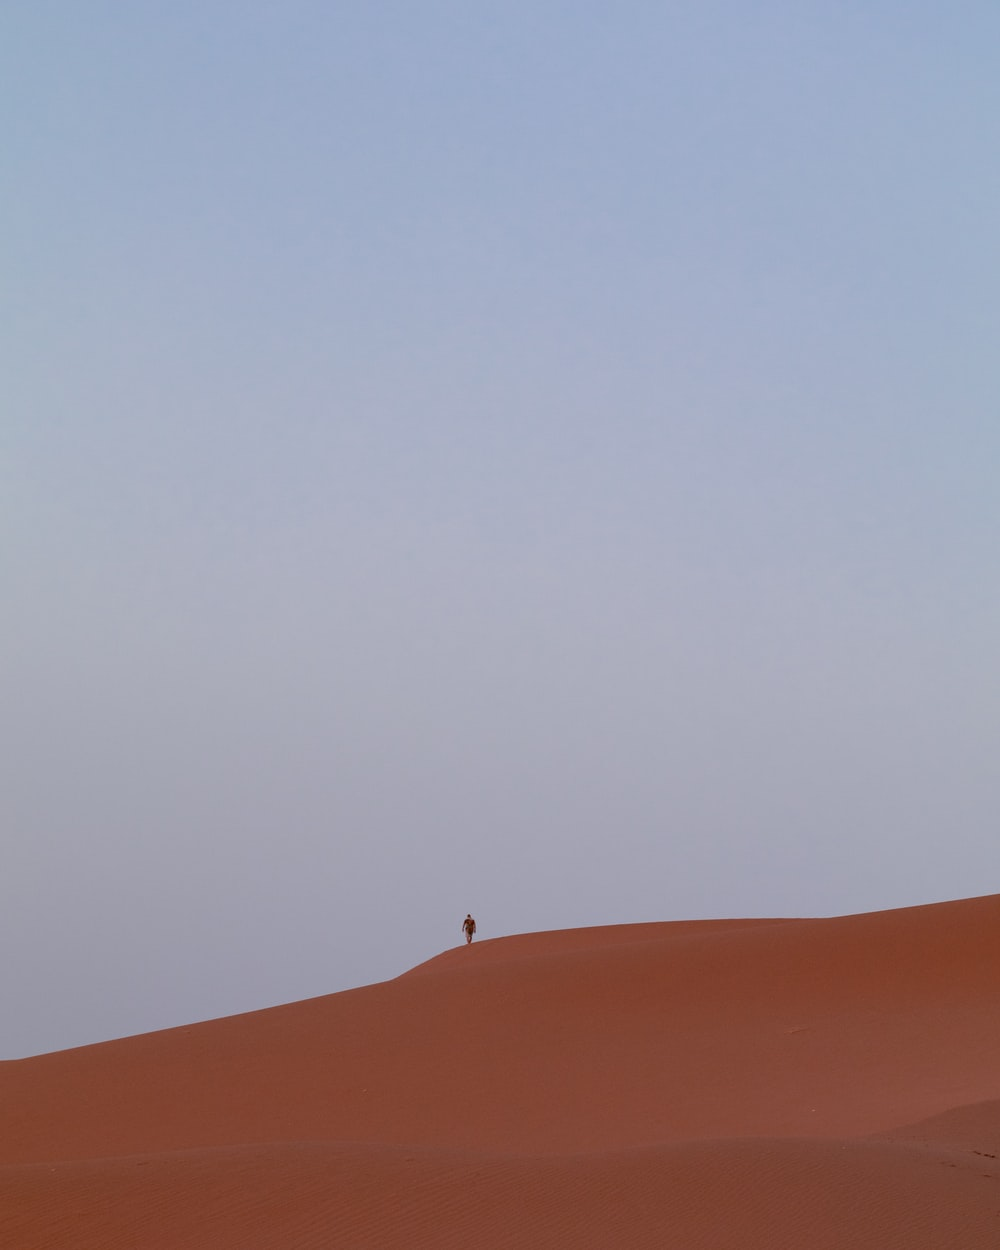 person standing on brown sand under gray sky during daytime